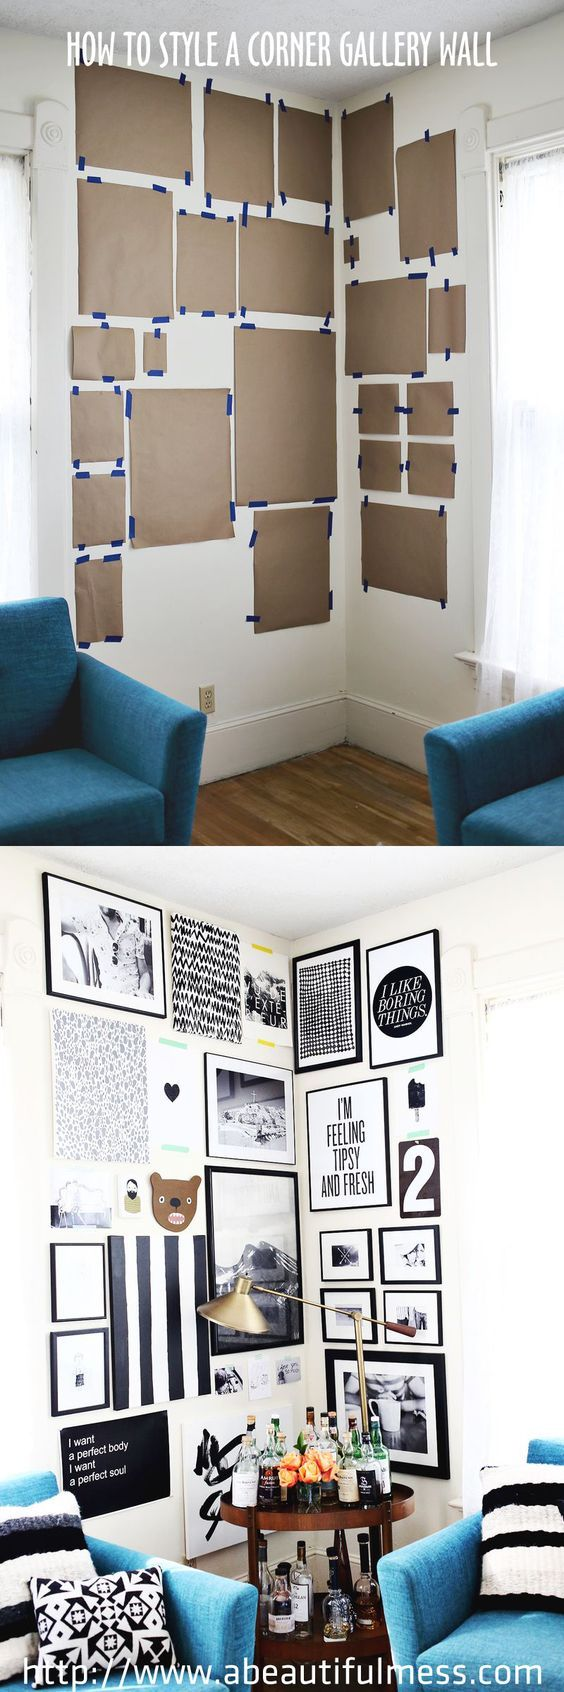 20 creative ways to use awkward corners in your home